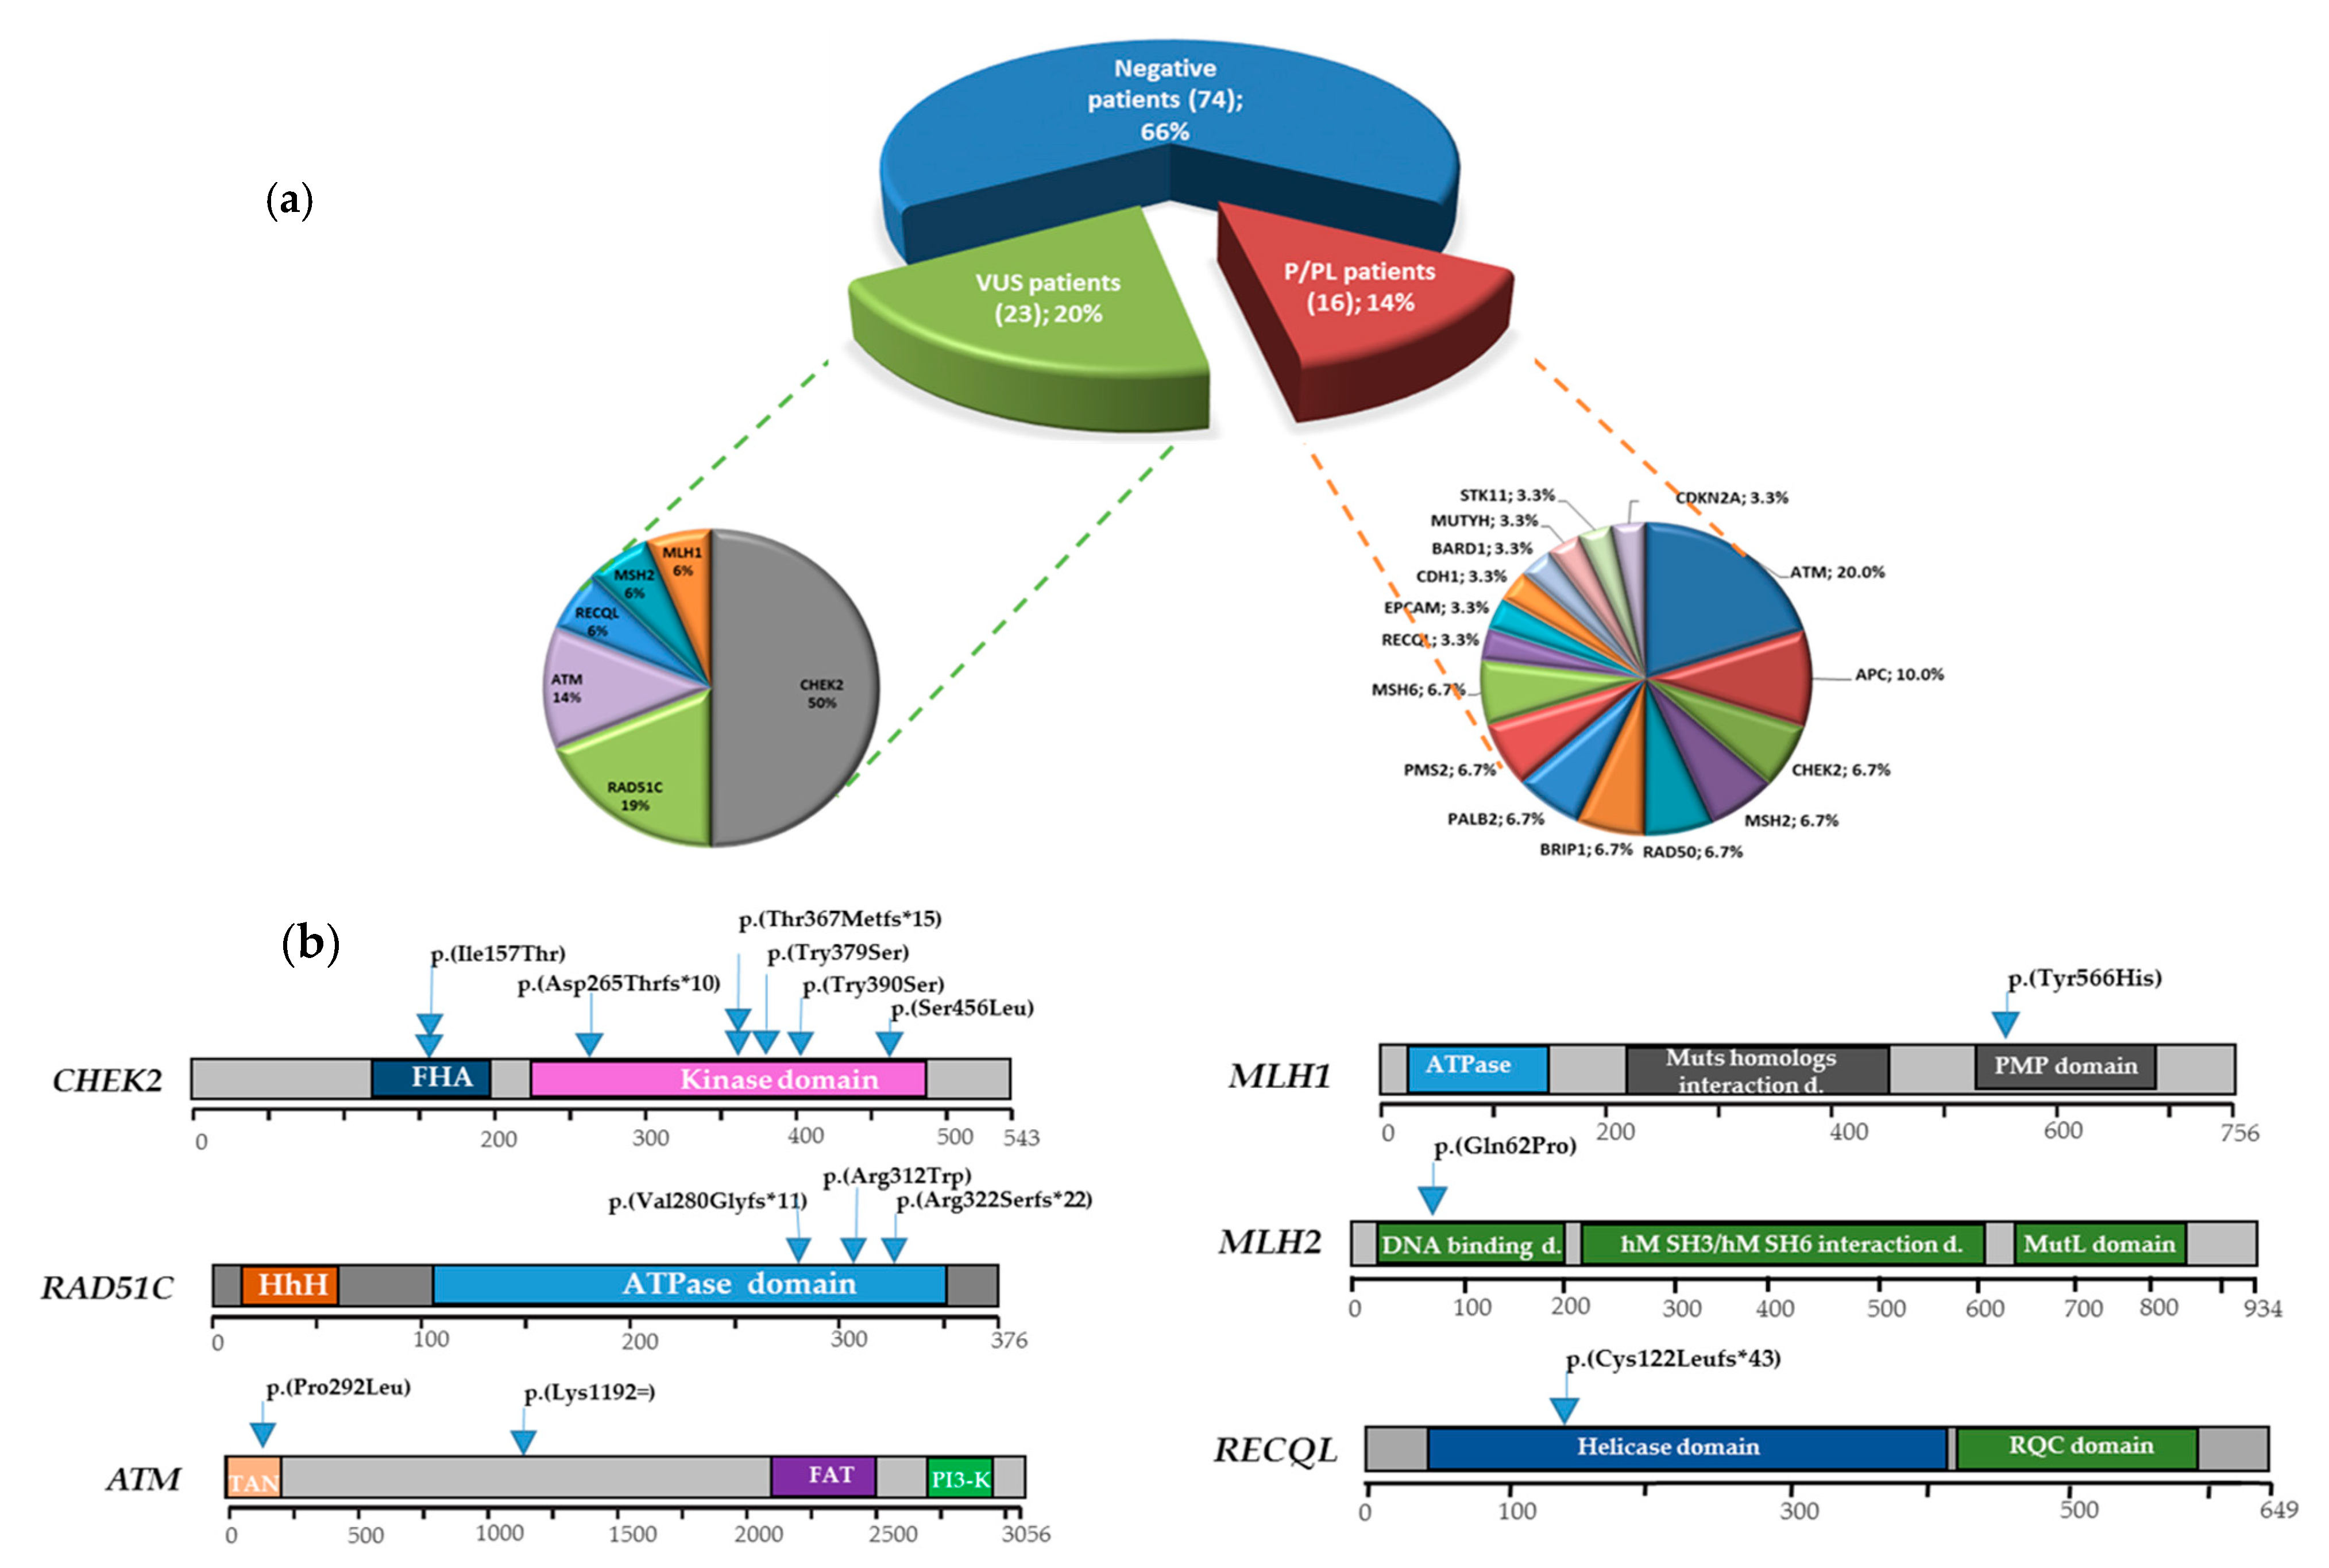 Jcm Free Full Text Beyond Brca1 And Brca2 Deleterious Variants In Dna Repair Pathway Genes In Italian Families With Breast Ovarian And Pancreatic Cancers Html